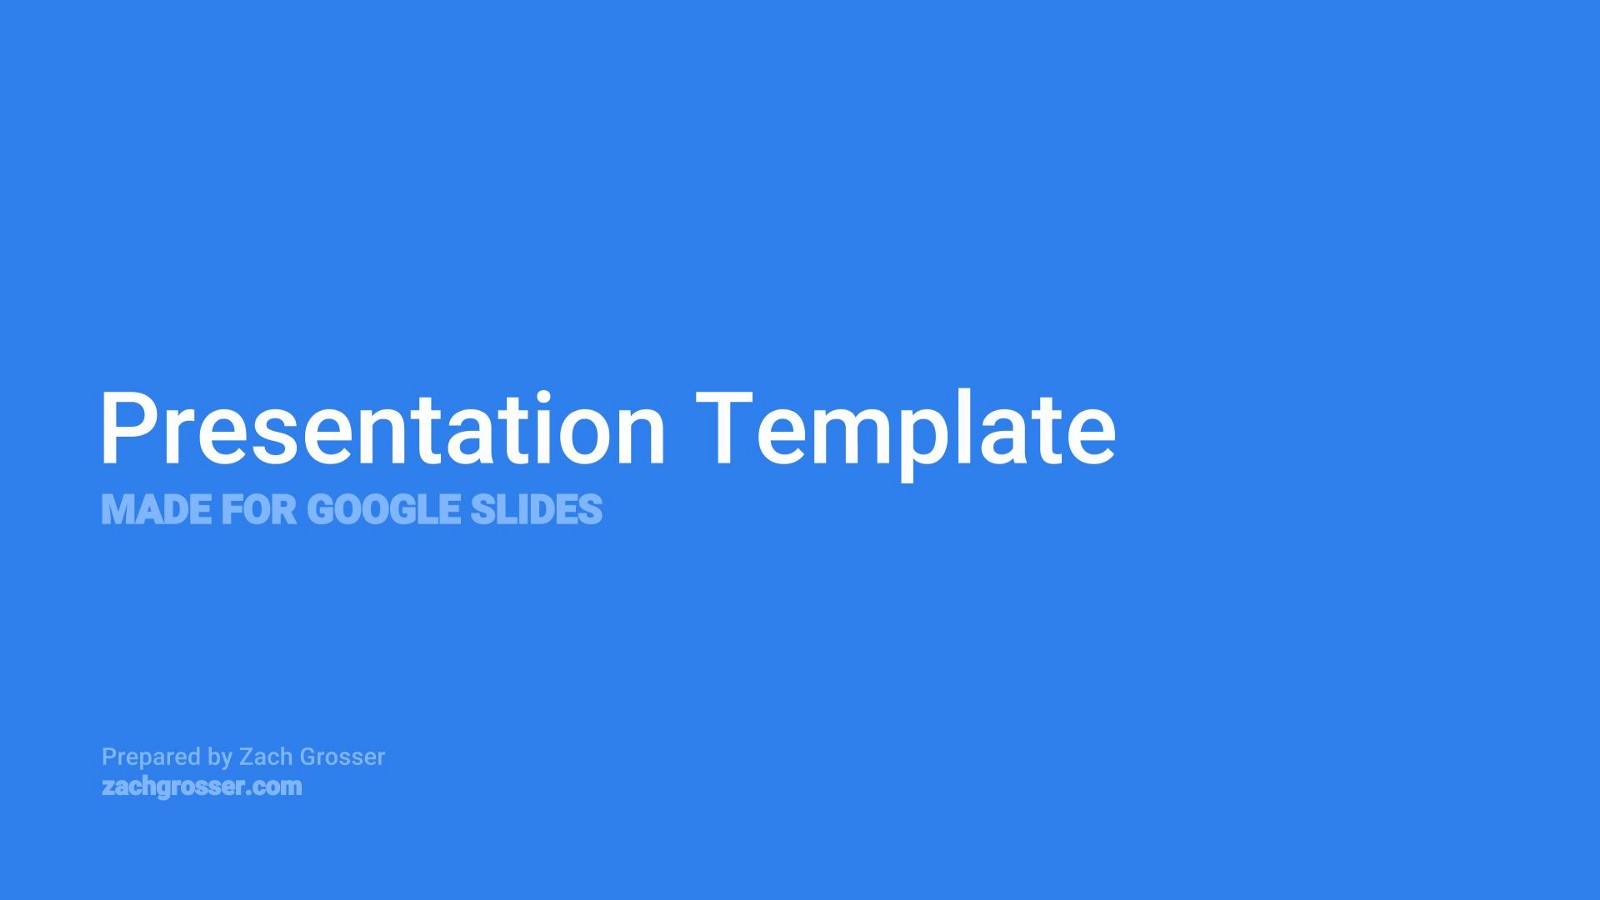 View And Create Your Own Copy Of This Template With Google Slides